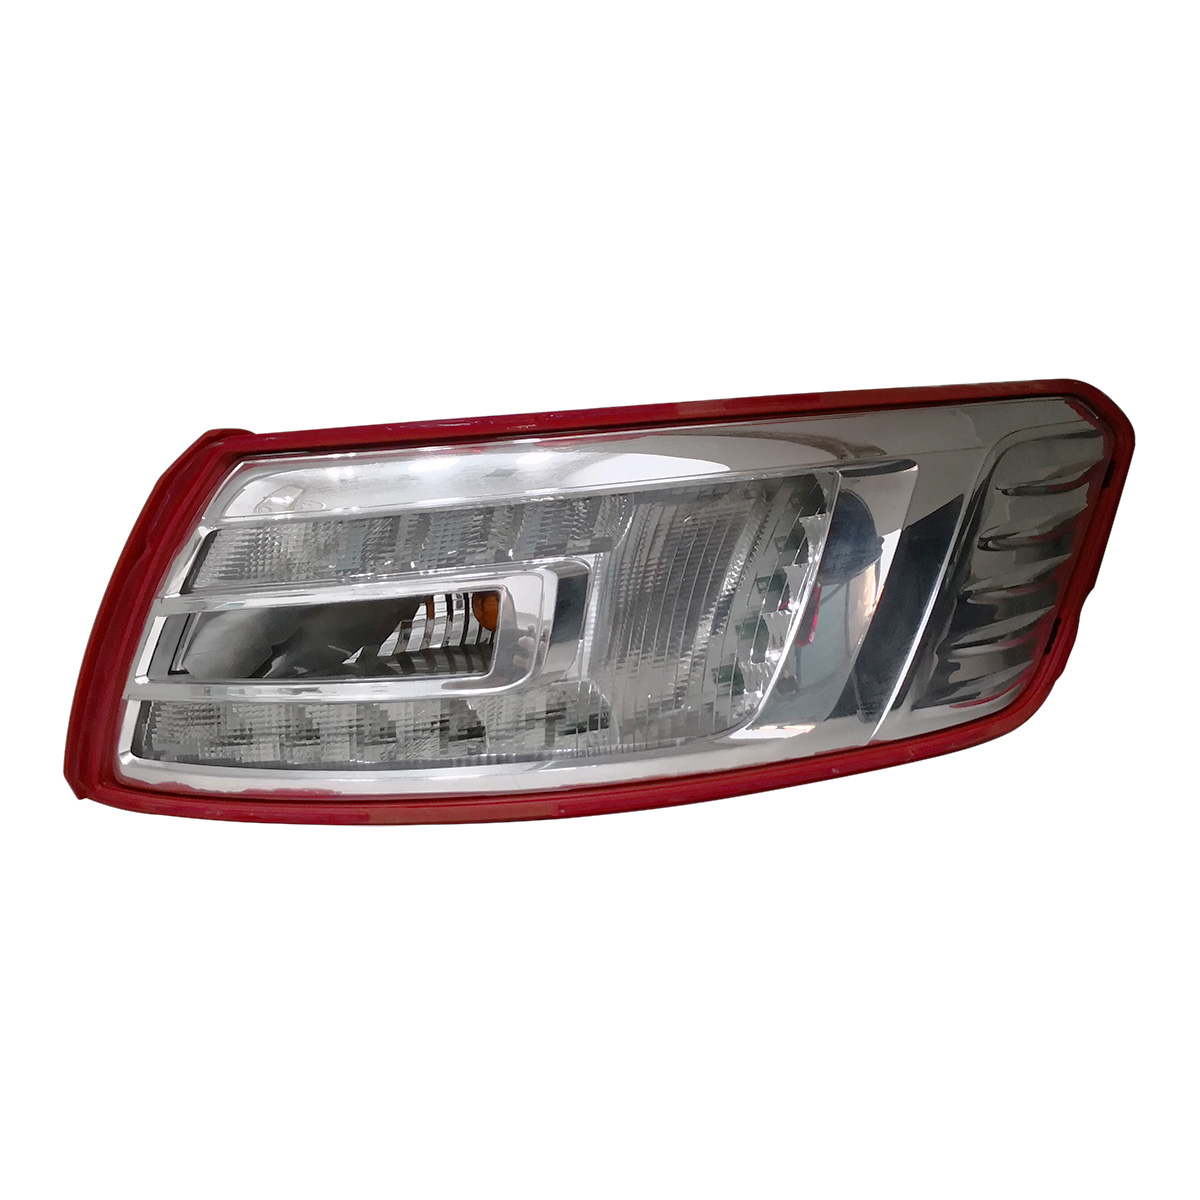 customized automotive led rear lamp plastic injection molding